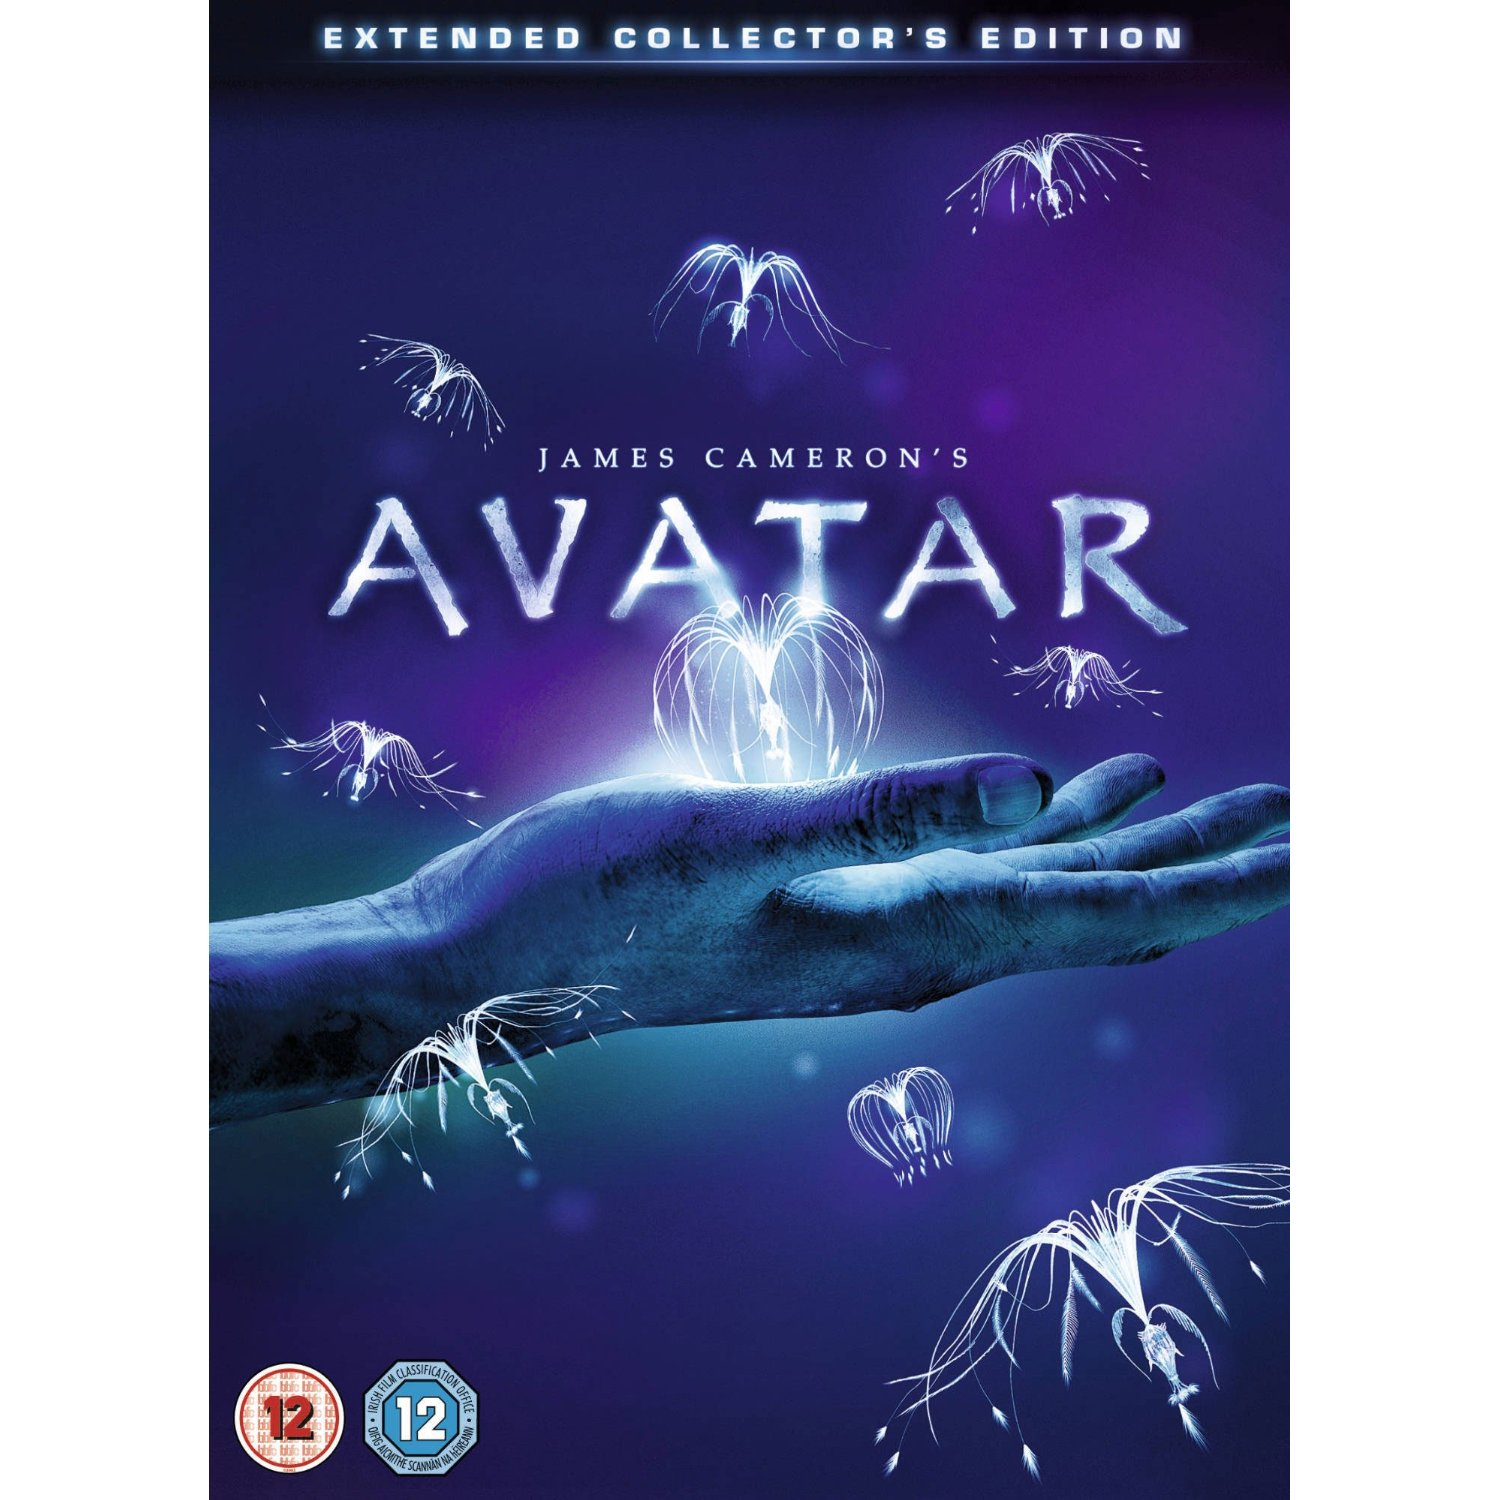 POPSICULTURE: DVD & Blu-ray Round Up: Avatar Extended